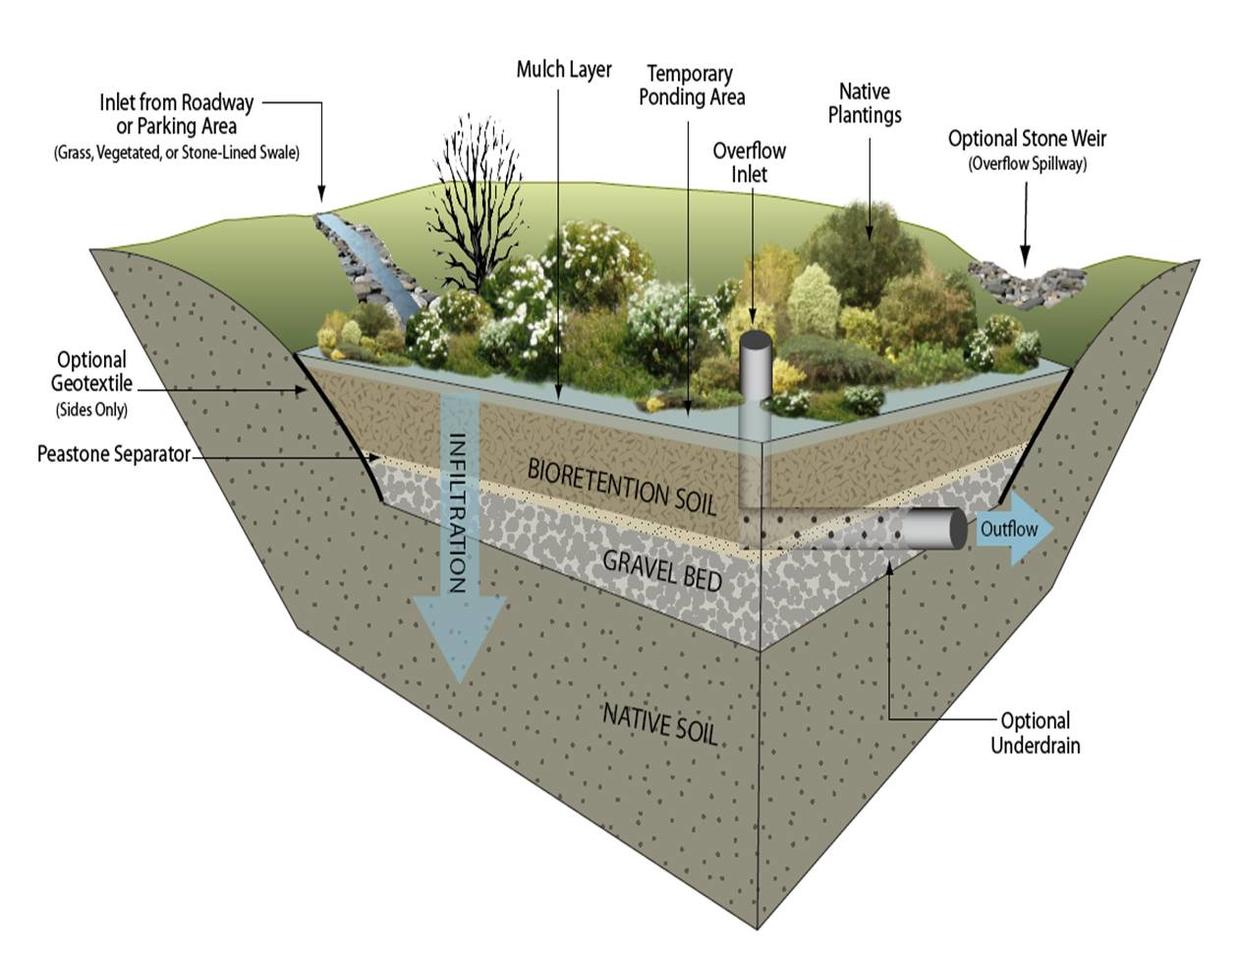 Bioretention cell detail (image credit: GeoSyntec Consultants)